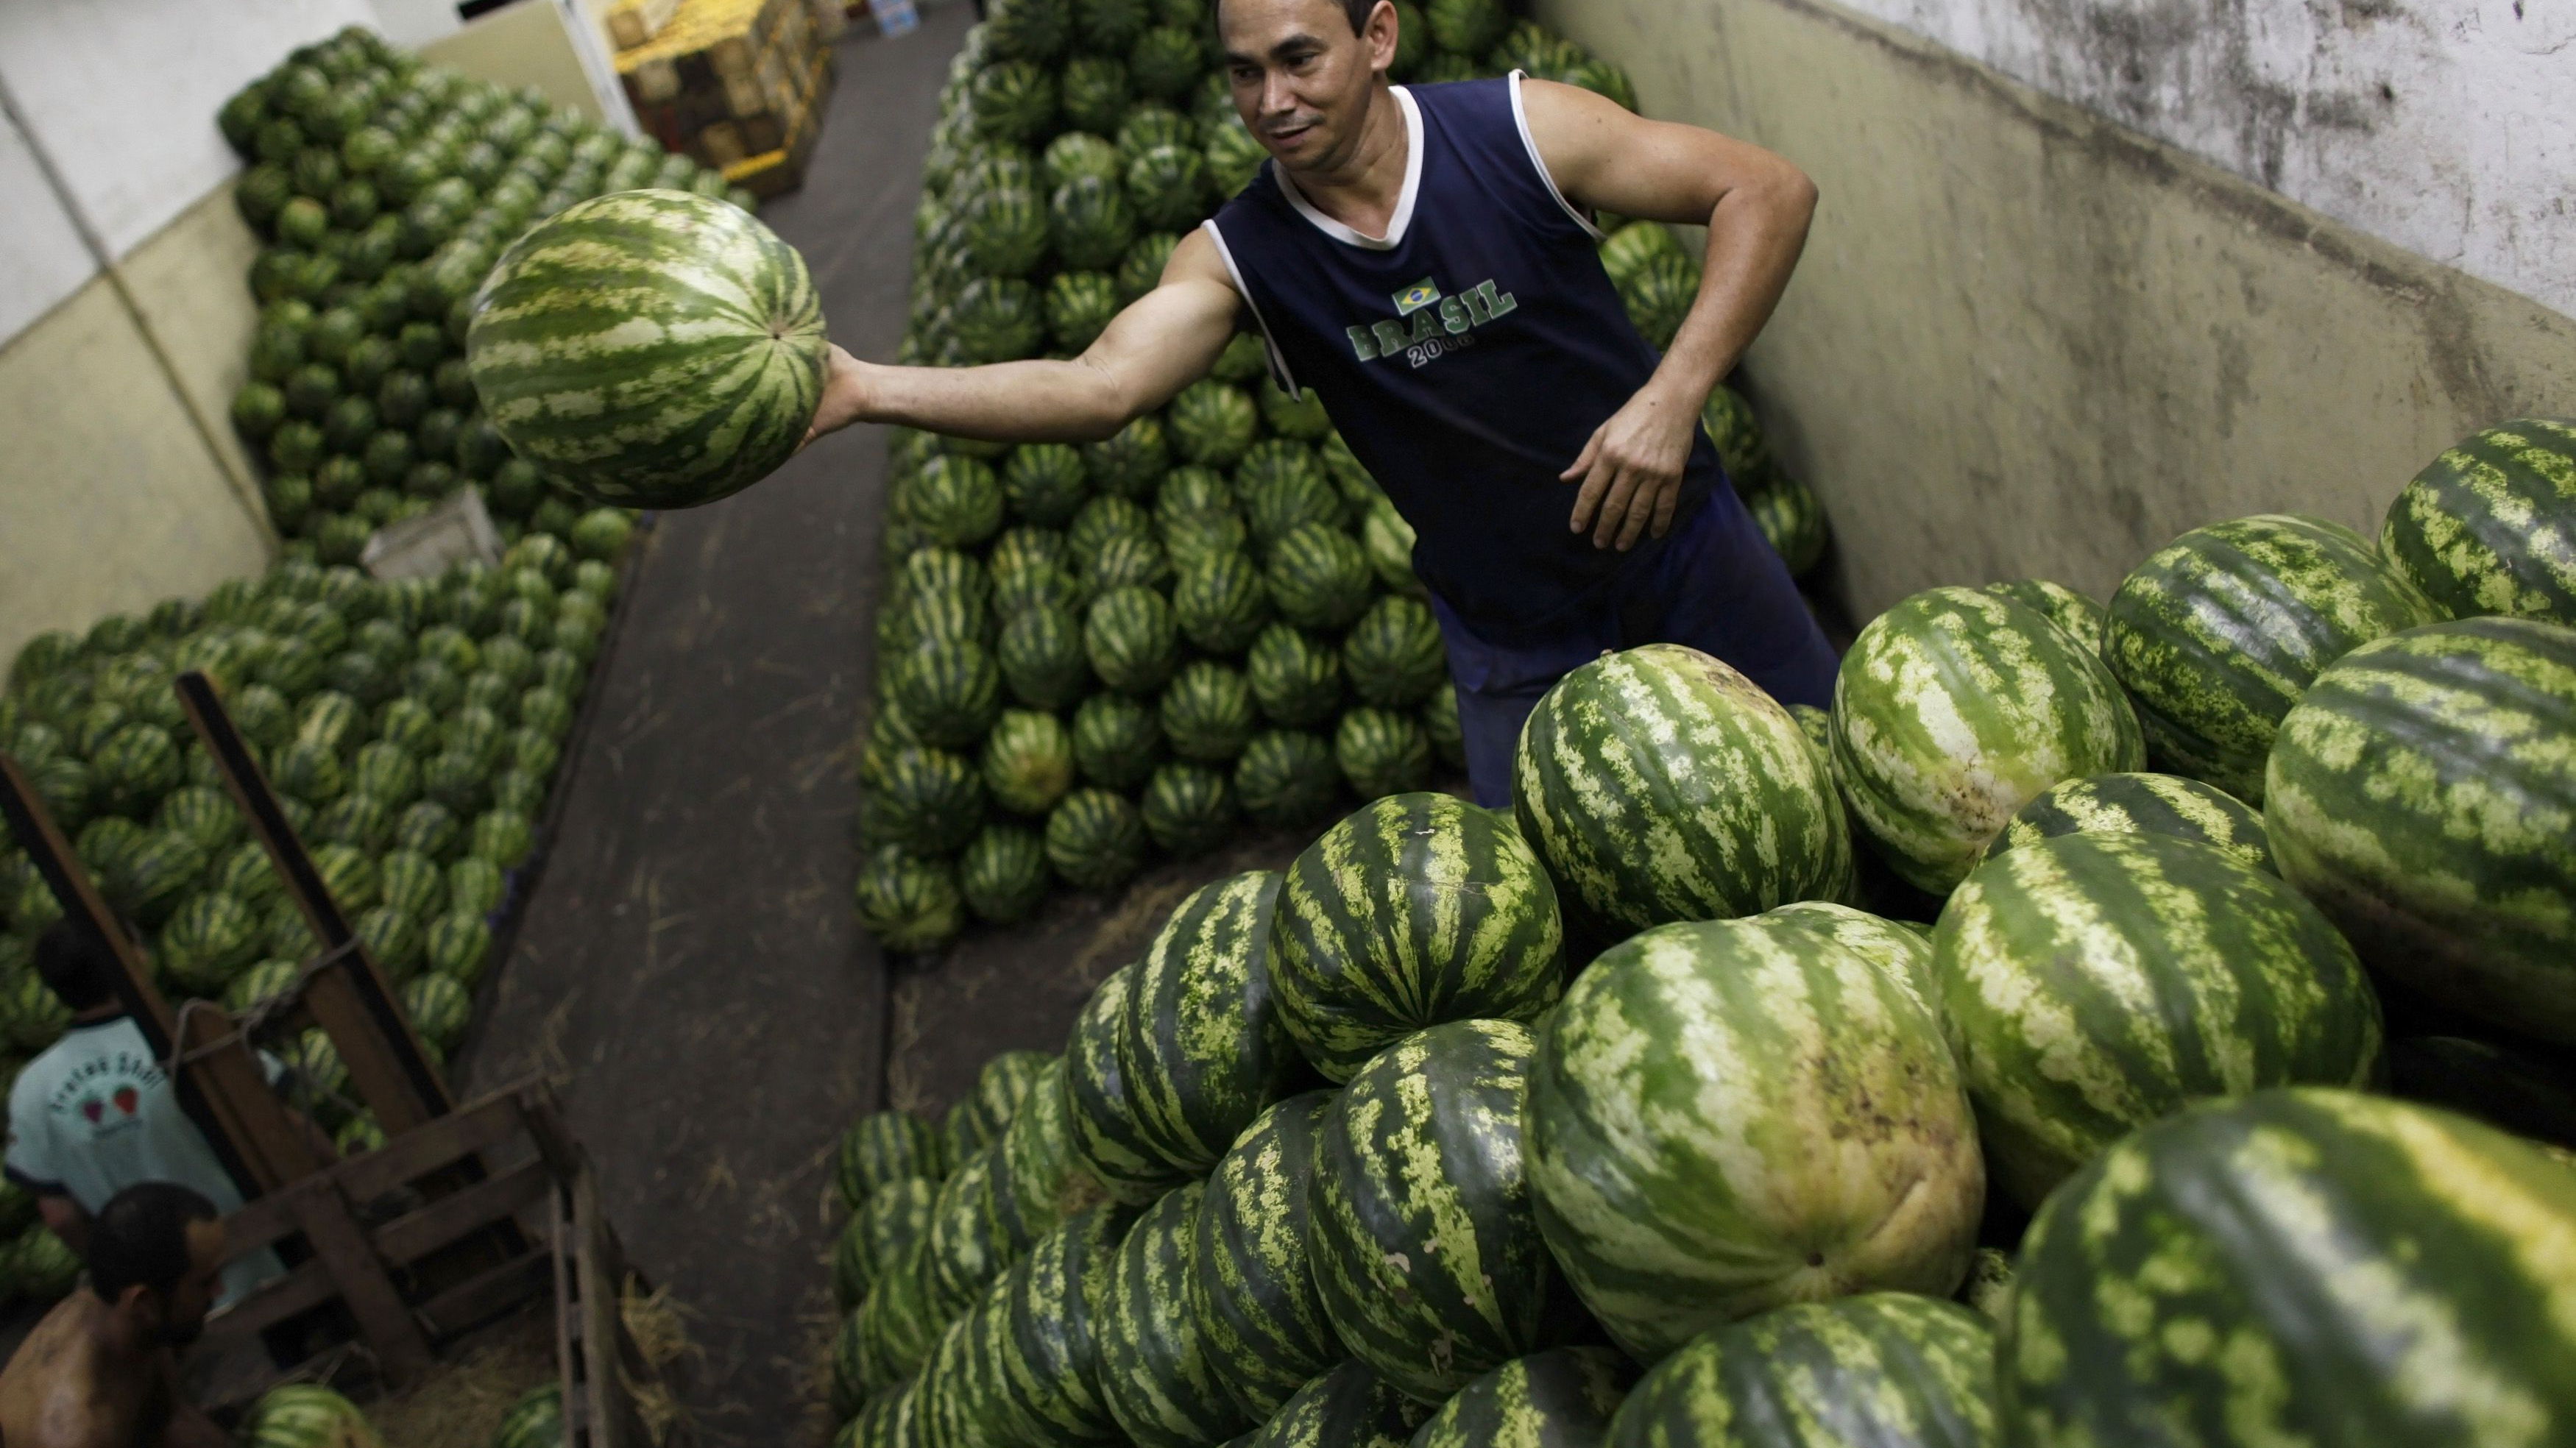 A worker arranges watermelons inside a wholesale supplier, before heading towards markets in Sao Paulo February 1, 2013. The broadest measure of Brazilian inflation eased month on month but accelerated on an annual basis in January, leaving the central bank focused on keeping price pressures in check ahead of an expected pick-up in economic growth later this year. Consumer food prices rose 1.97 percent, compared with an increase of 1.29 percent in December. REUTERS/ Nacho Doce (BRAZIL - Tags: BUSINESS FOOD)